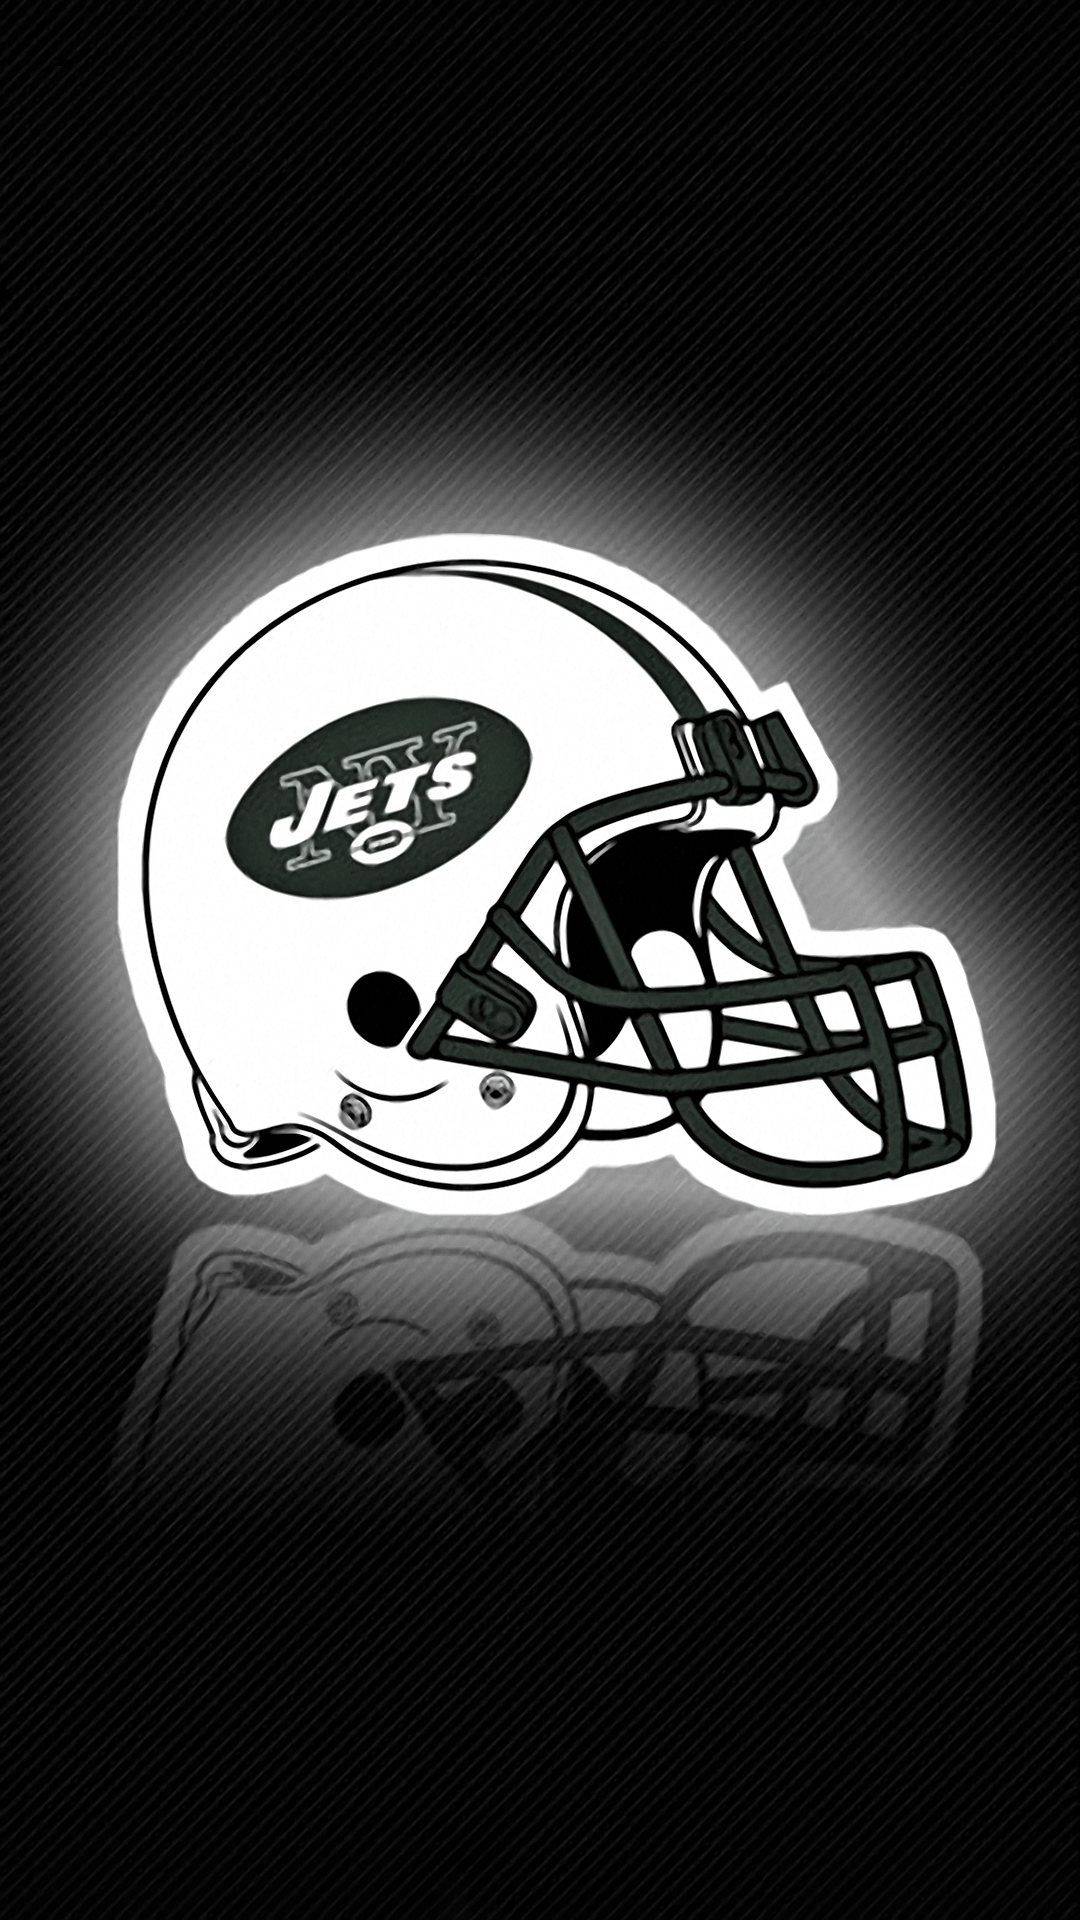 NY Jets iPhone 6 Plus Wallpapers